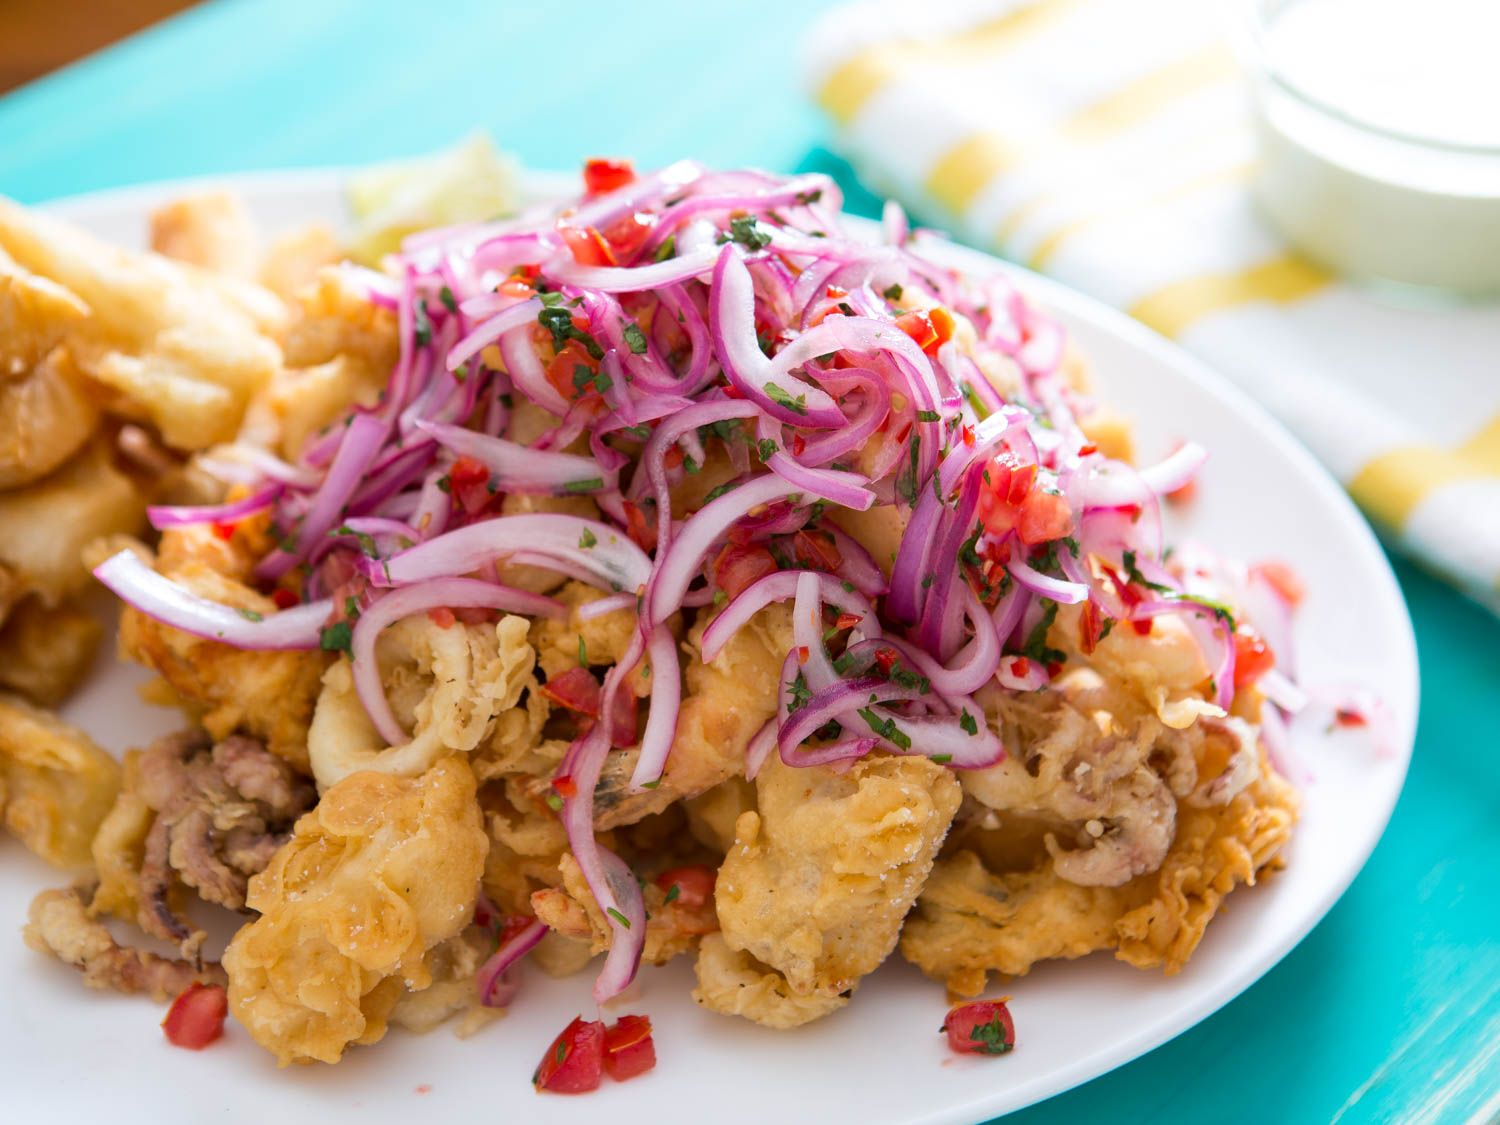 Peruvian fried seafood platter with lime marinated onion and peruvian fried seafood platter with lime marinated onion and tomato salad jalea recipe seafood platter tomato salad and onions forumfinder